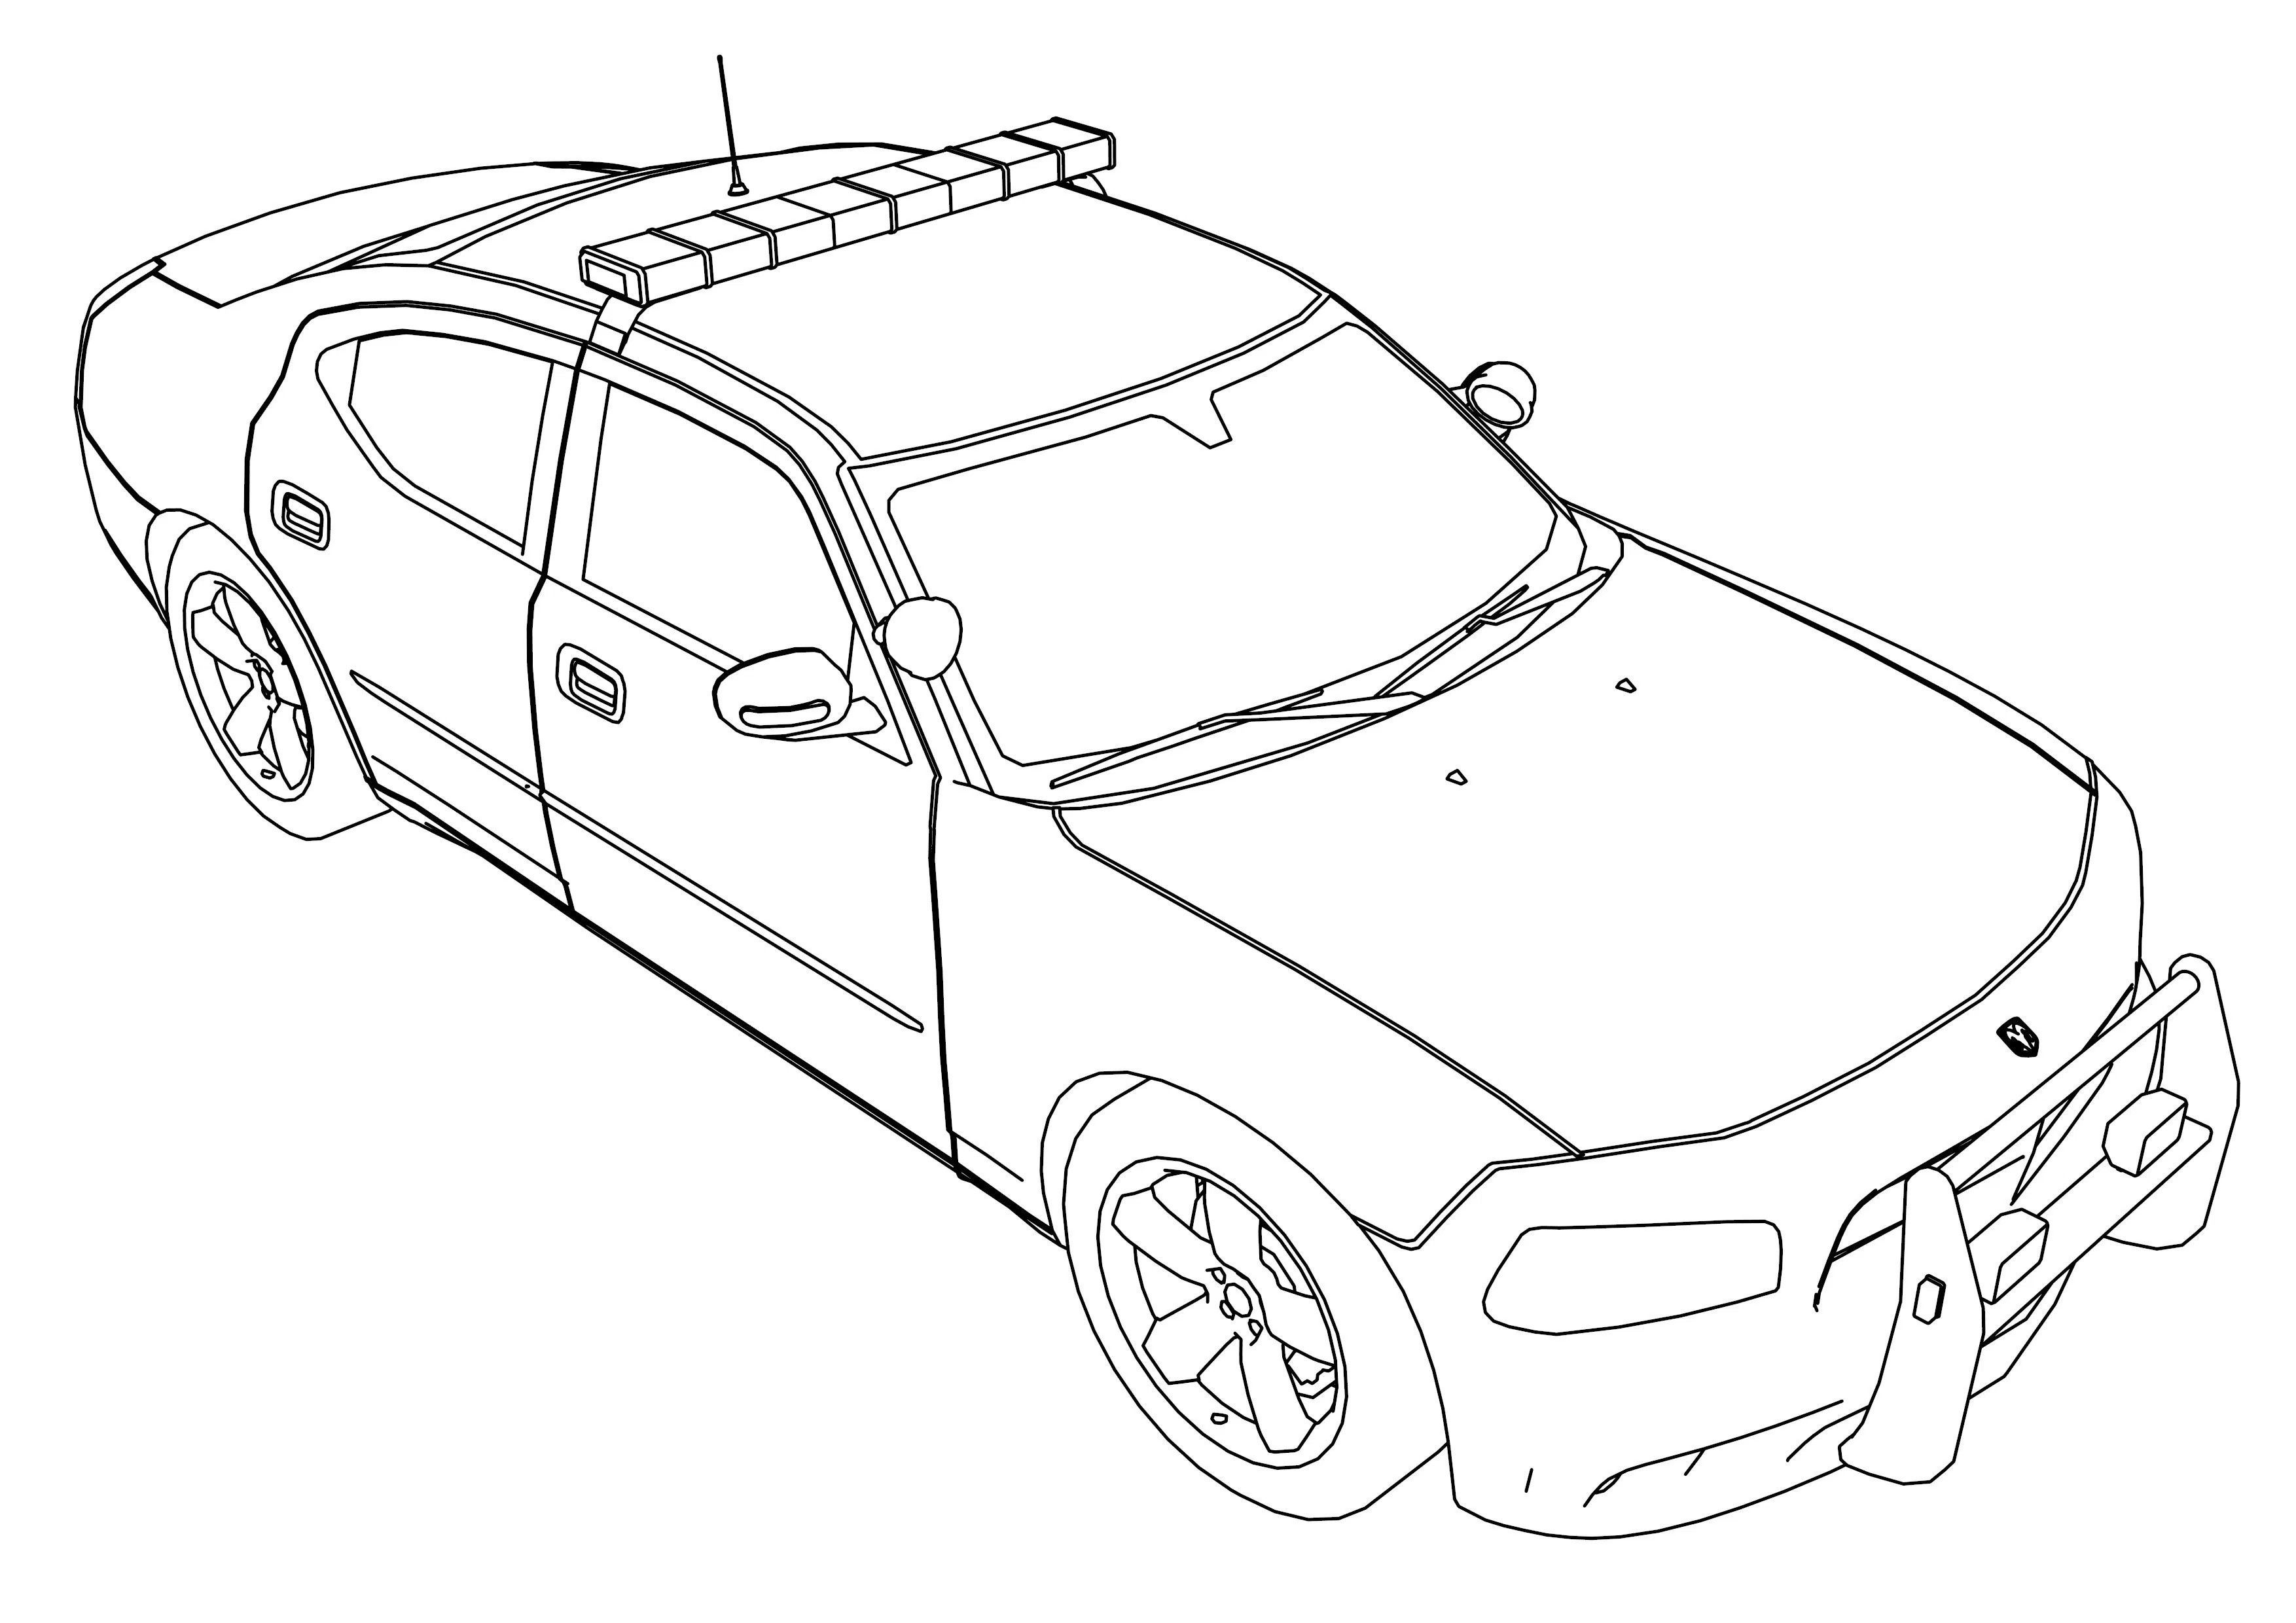 Paw Patrol Vehicles Coloring Pages New Matchbox With Police Car